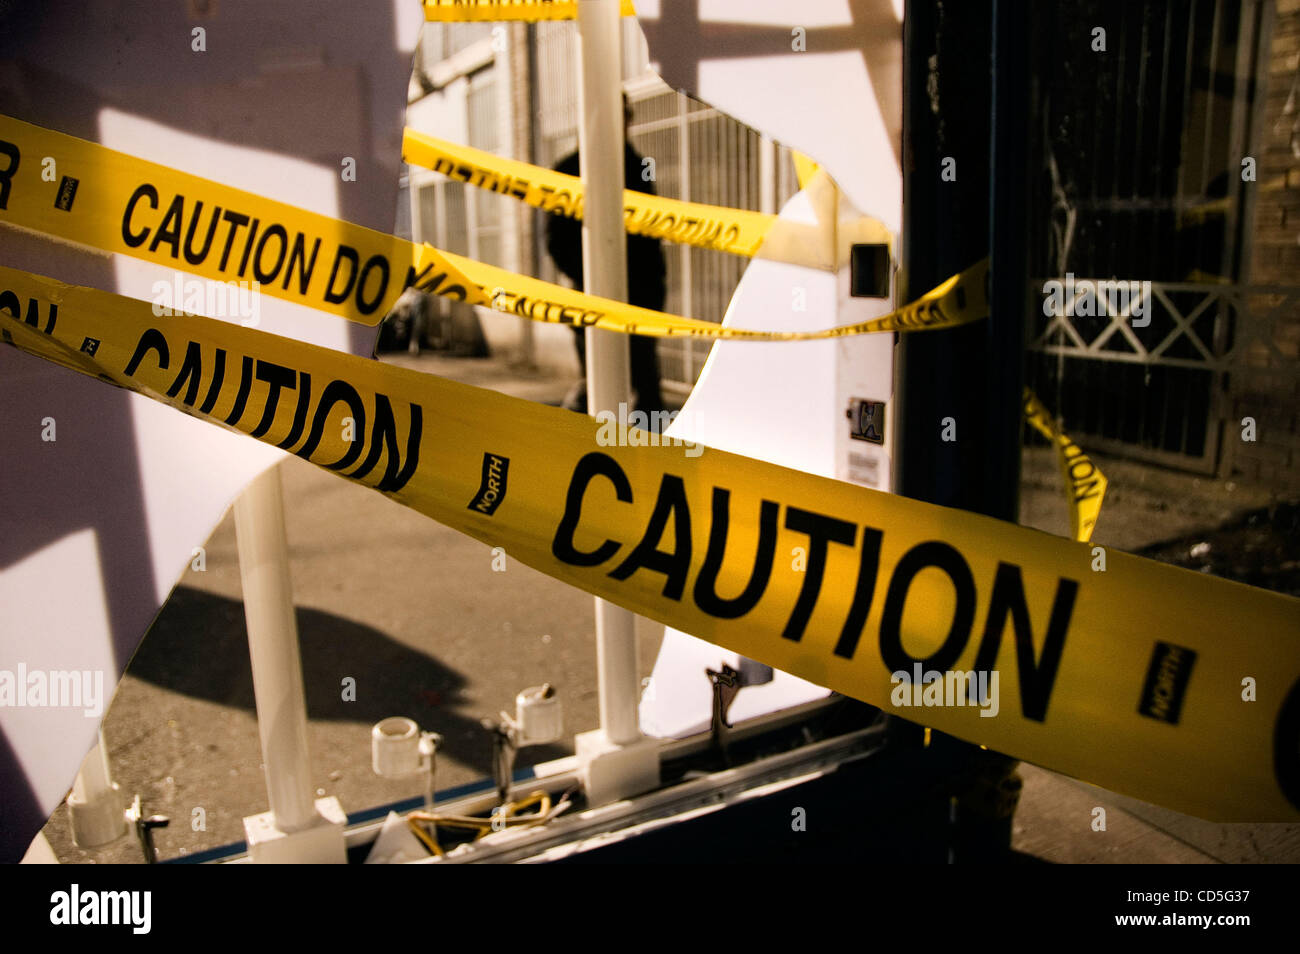 Jun 12, 2008 - Vancouver, British Columbia, Canada - Caution tape keeps transit riders away from a bus shelter after Stock Photo